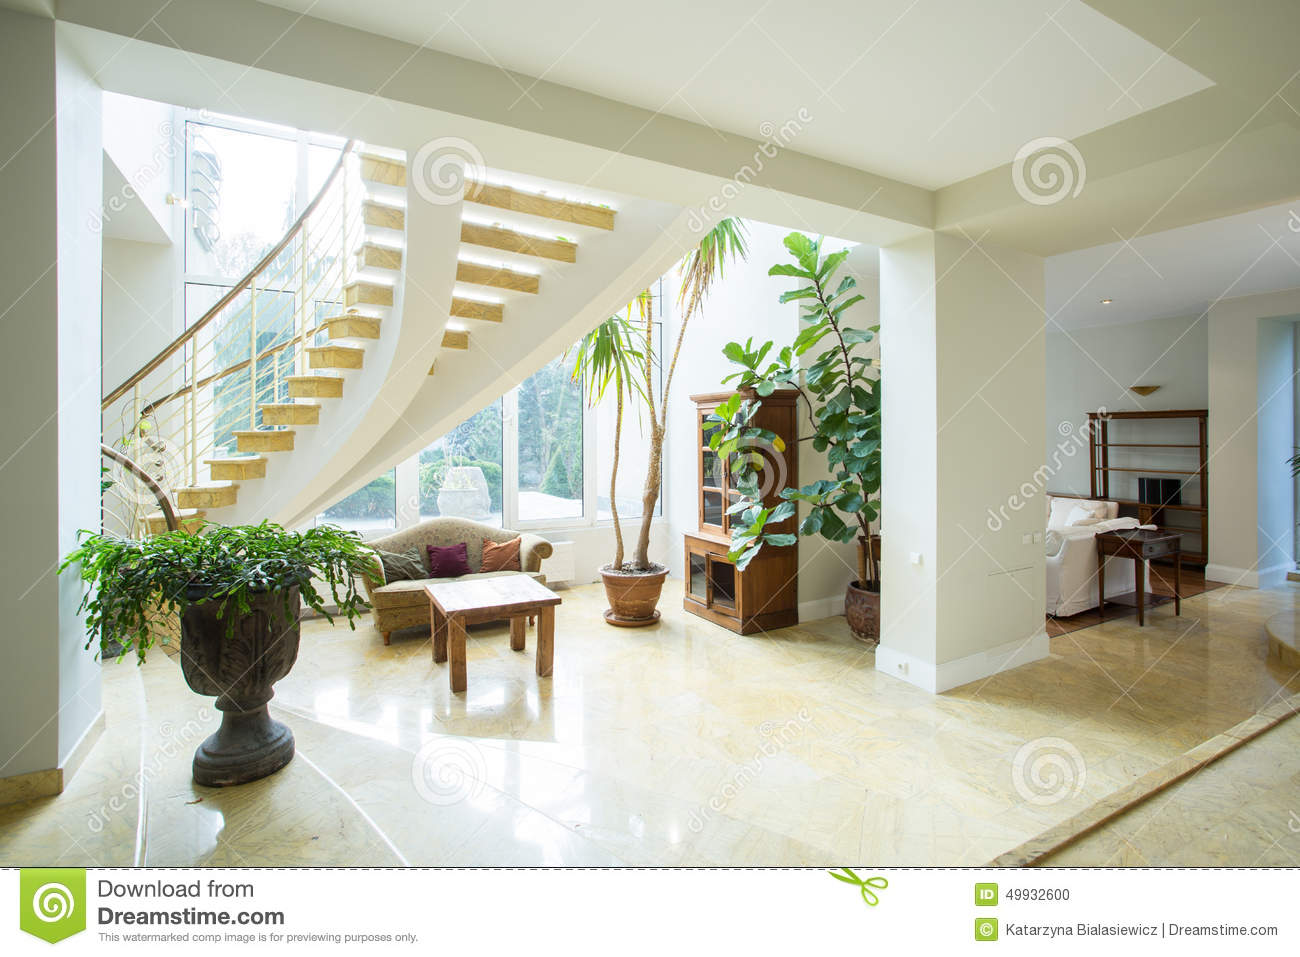 Greek Style House open space inside greek style house stock photo - image: 49932600